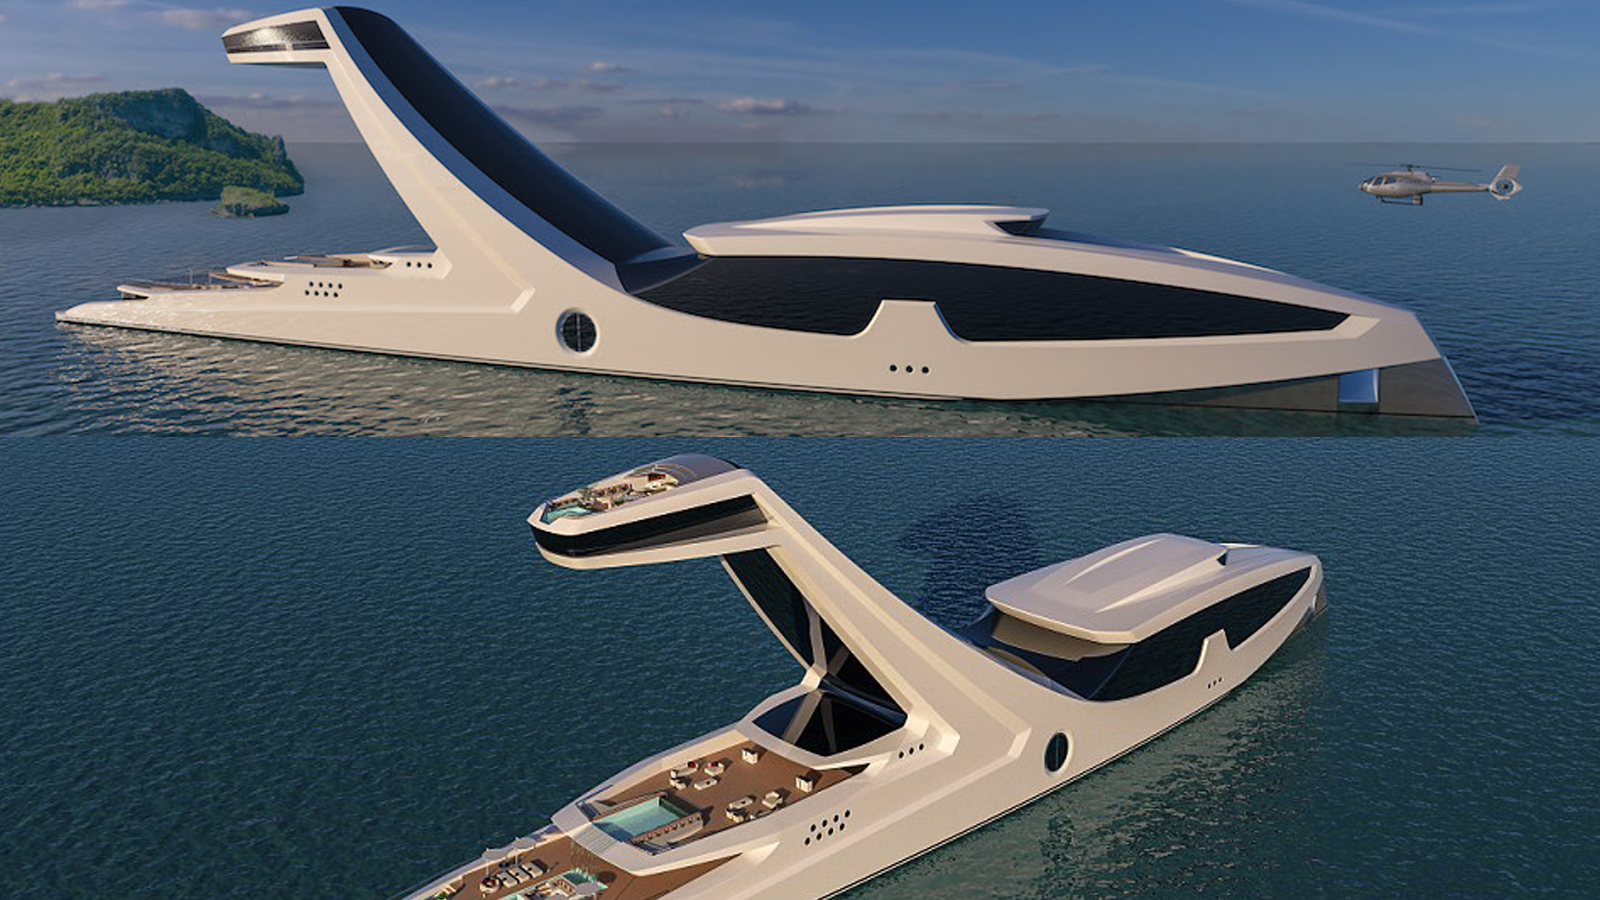 shaddai the most adventurous mega yacht ever designed